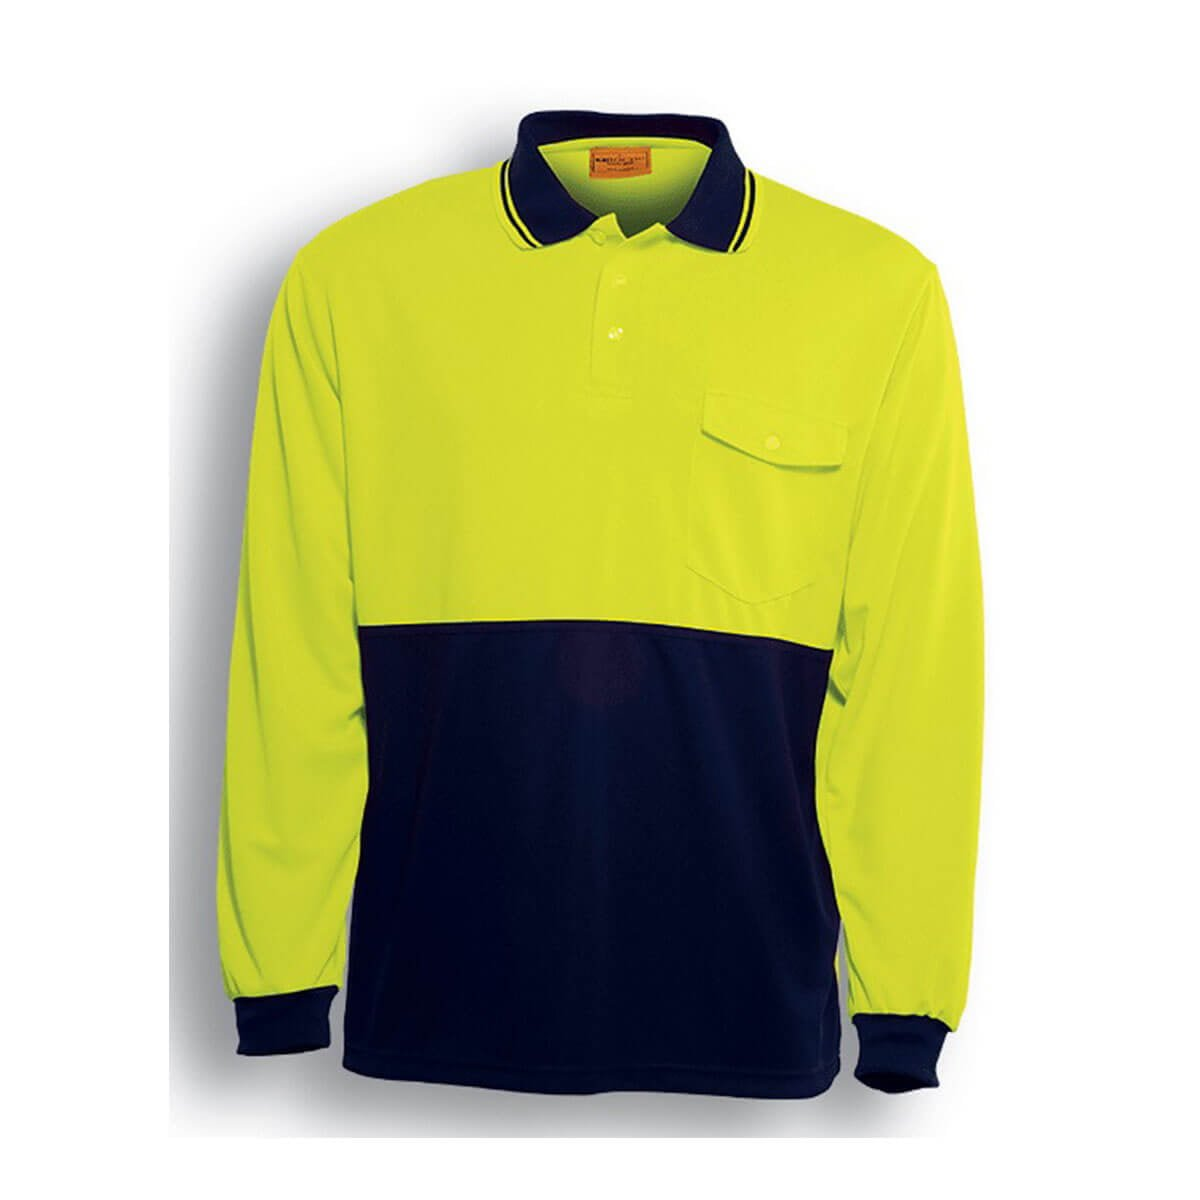 HI-VIS SAFETY POLO – LONG SLEEVE-Lime / Navy